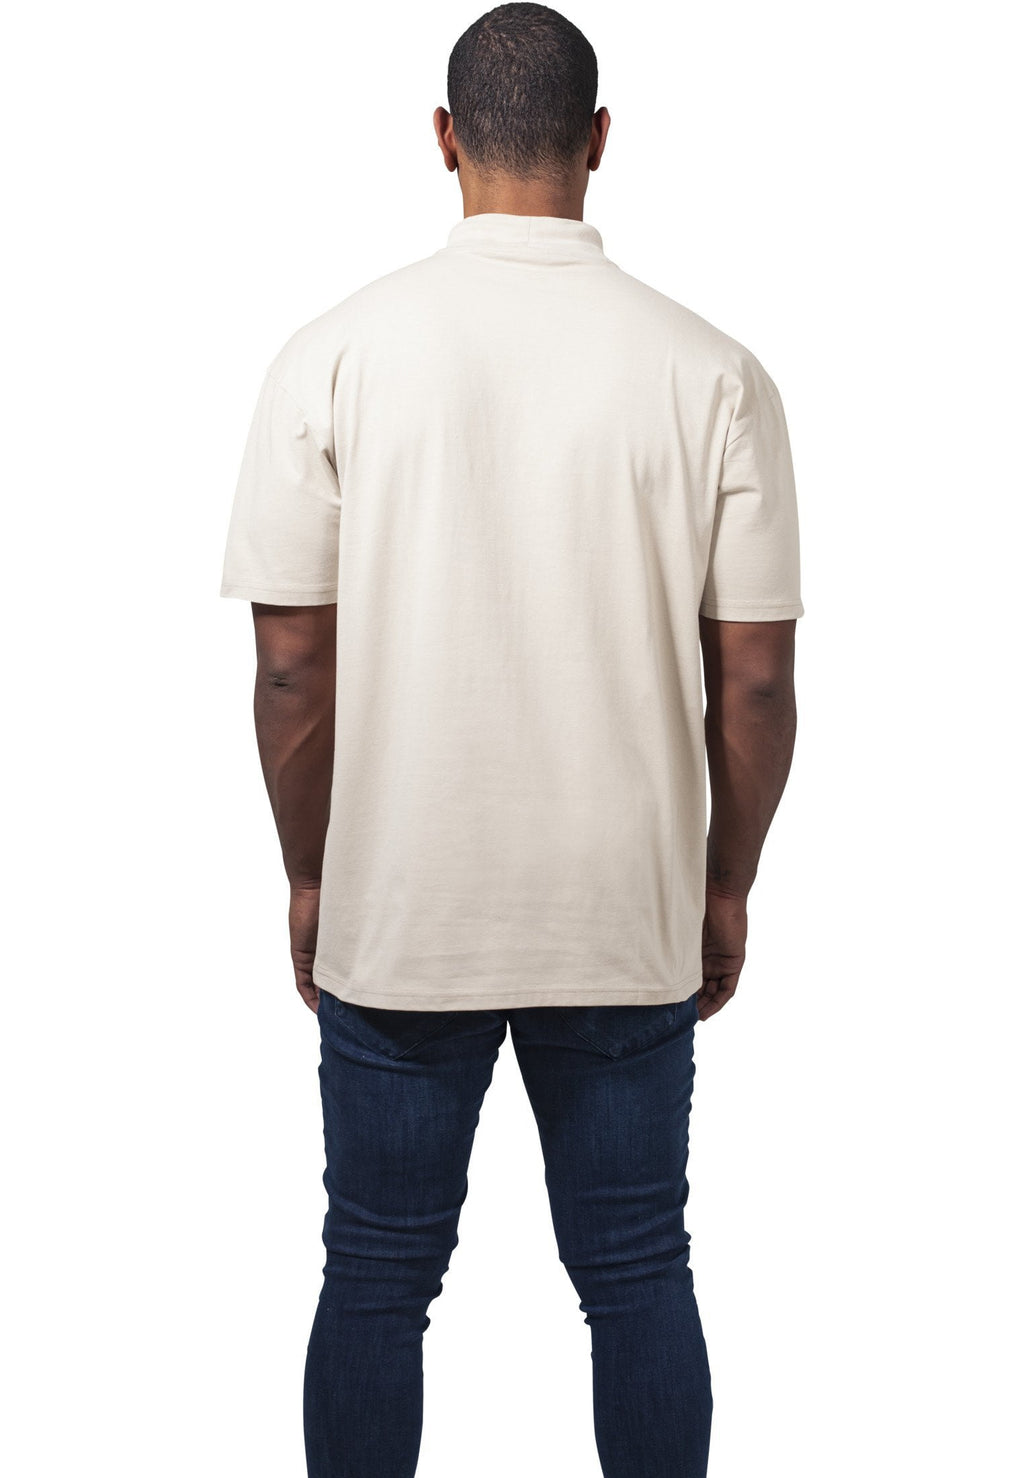 Oversized Turtleneck Tee - Beige